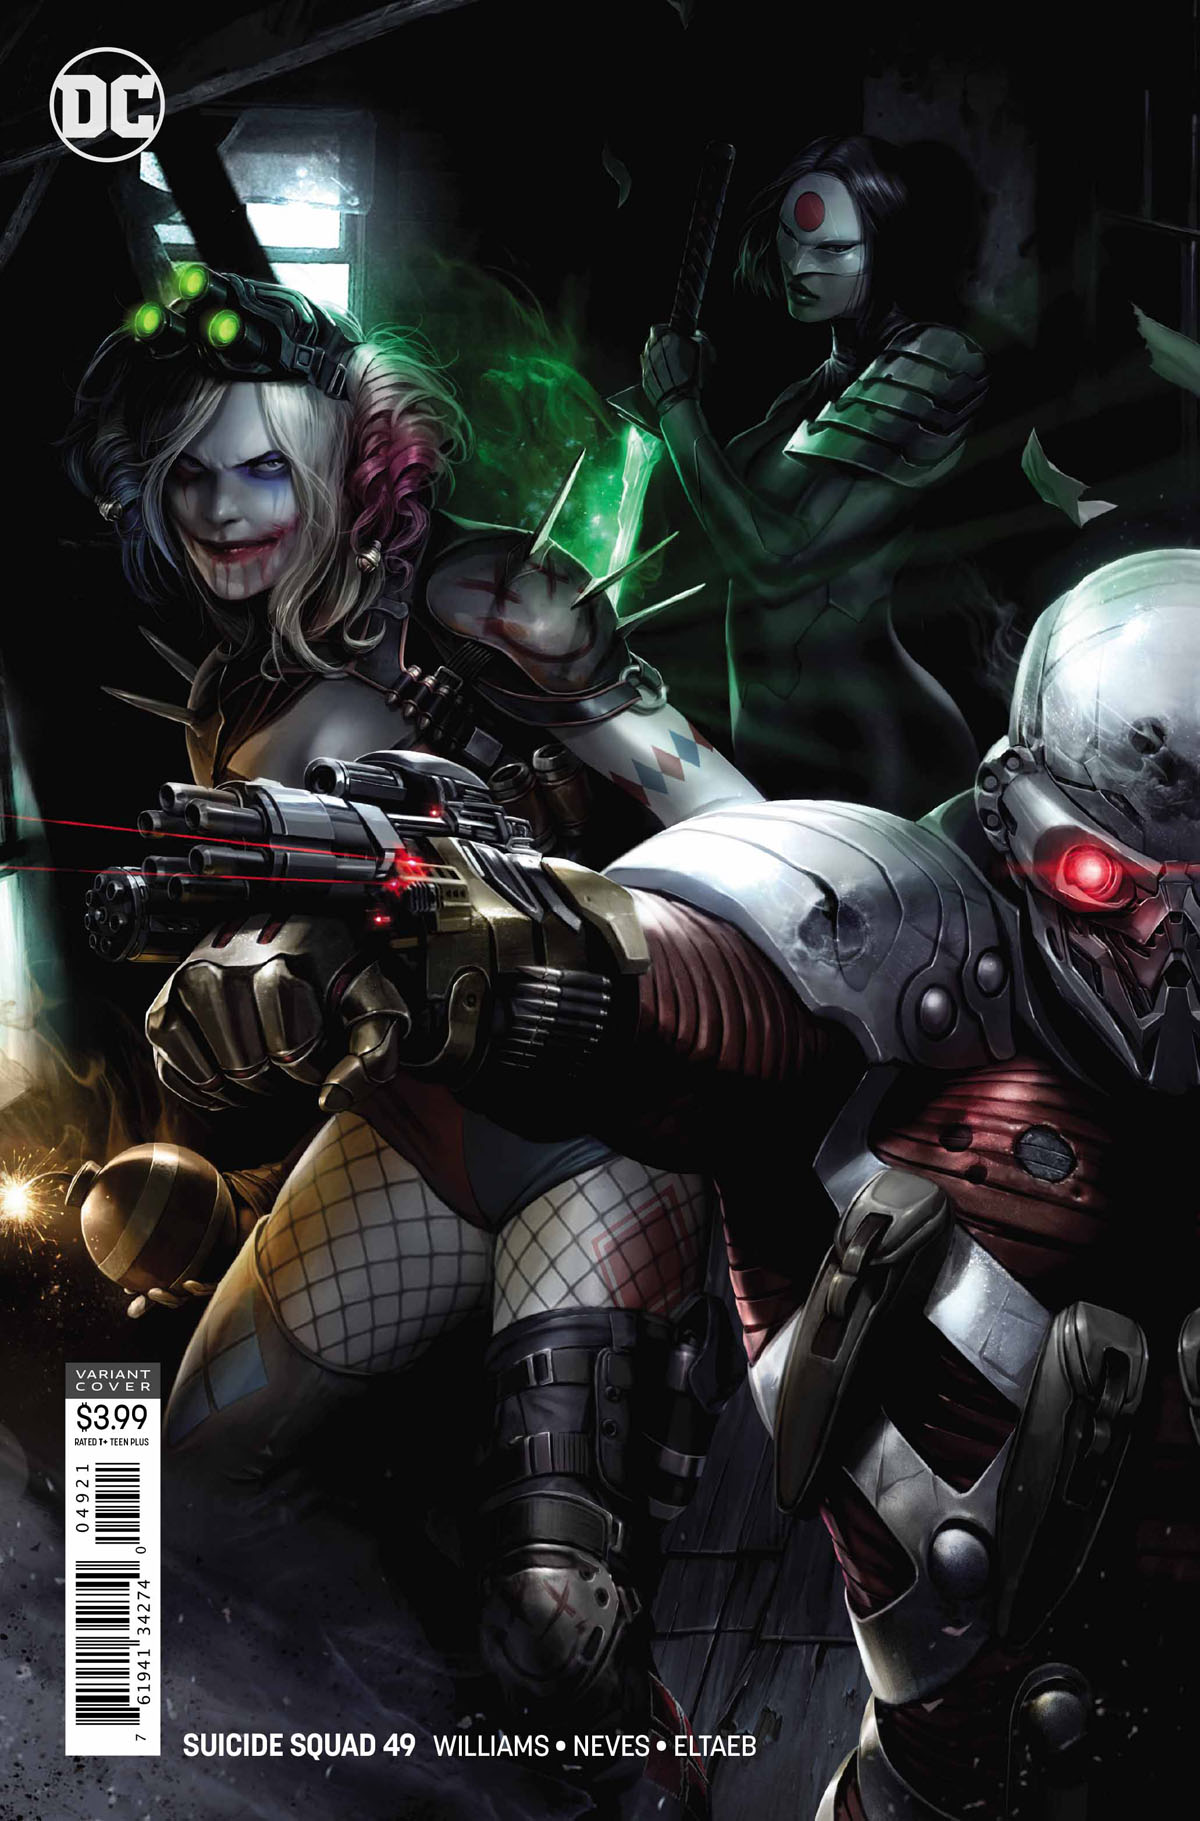 Suicide Squad 49 variant cover